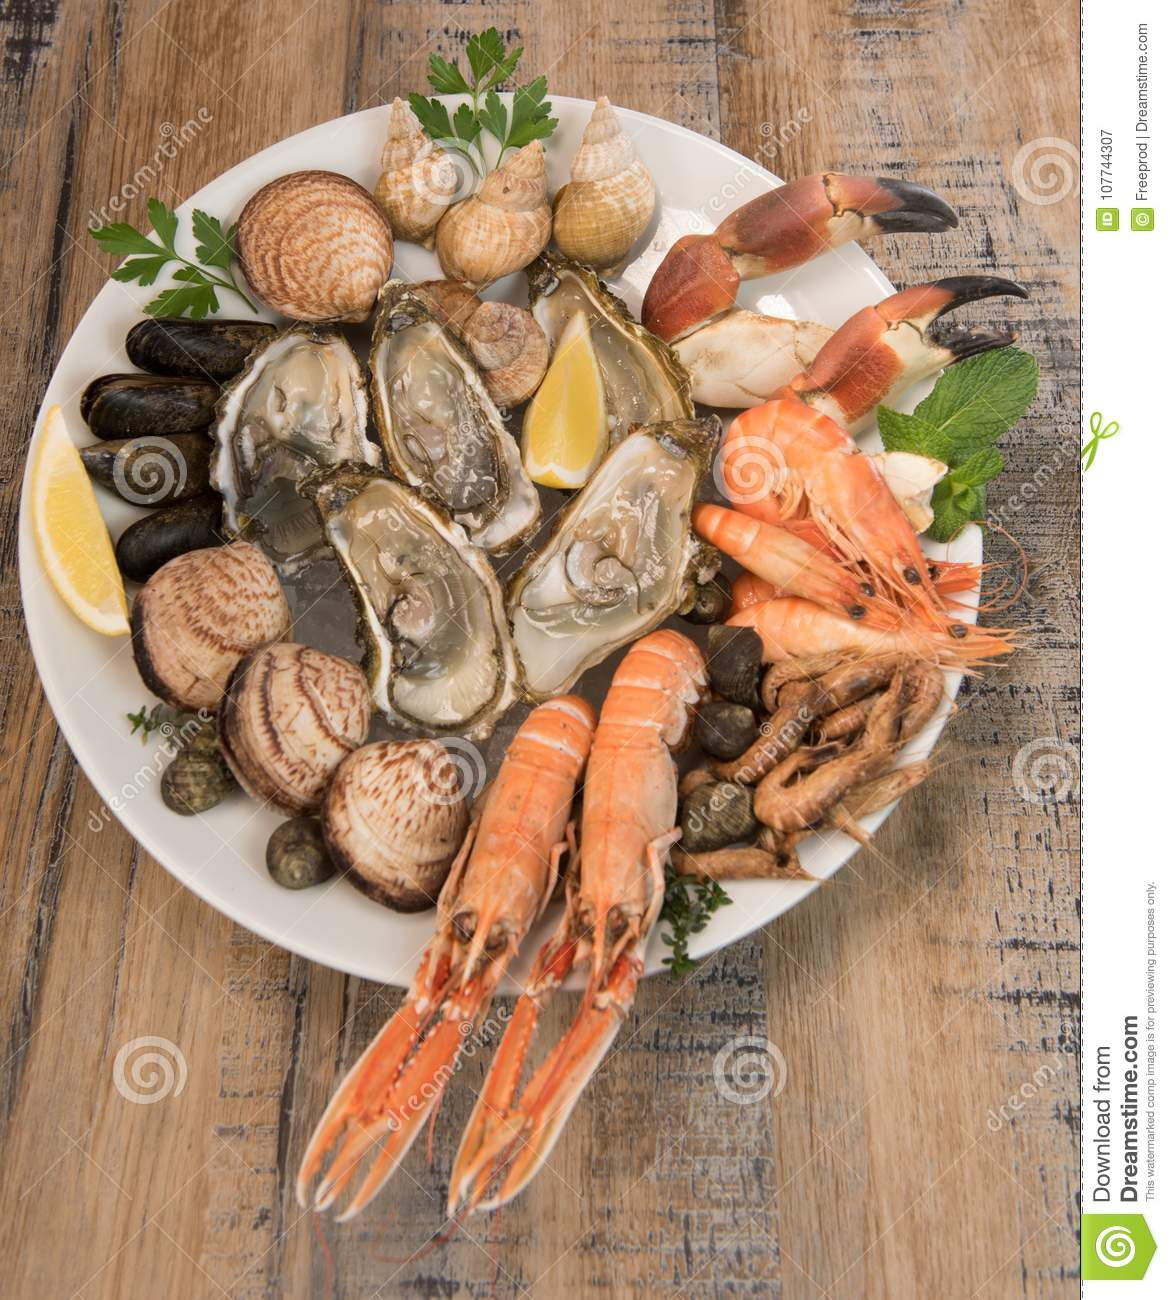 Fresh Seafood Platter With Lobster Mussels And Oysters Stock Image Image Of Party Presentation 107744307